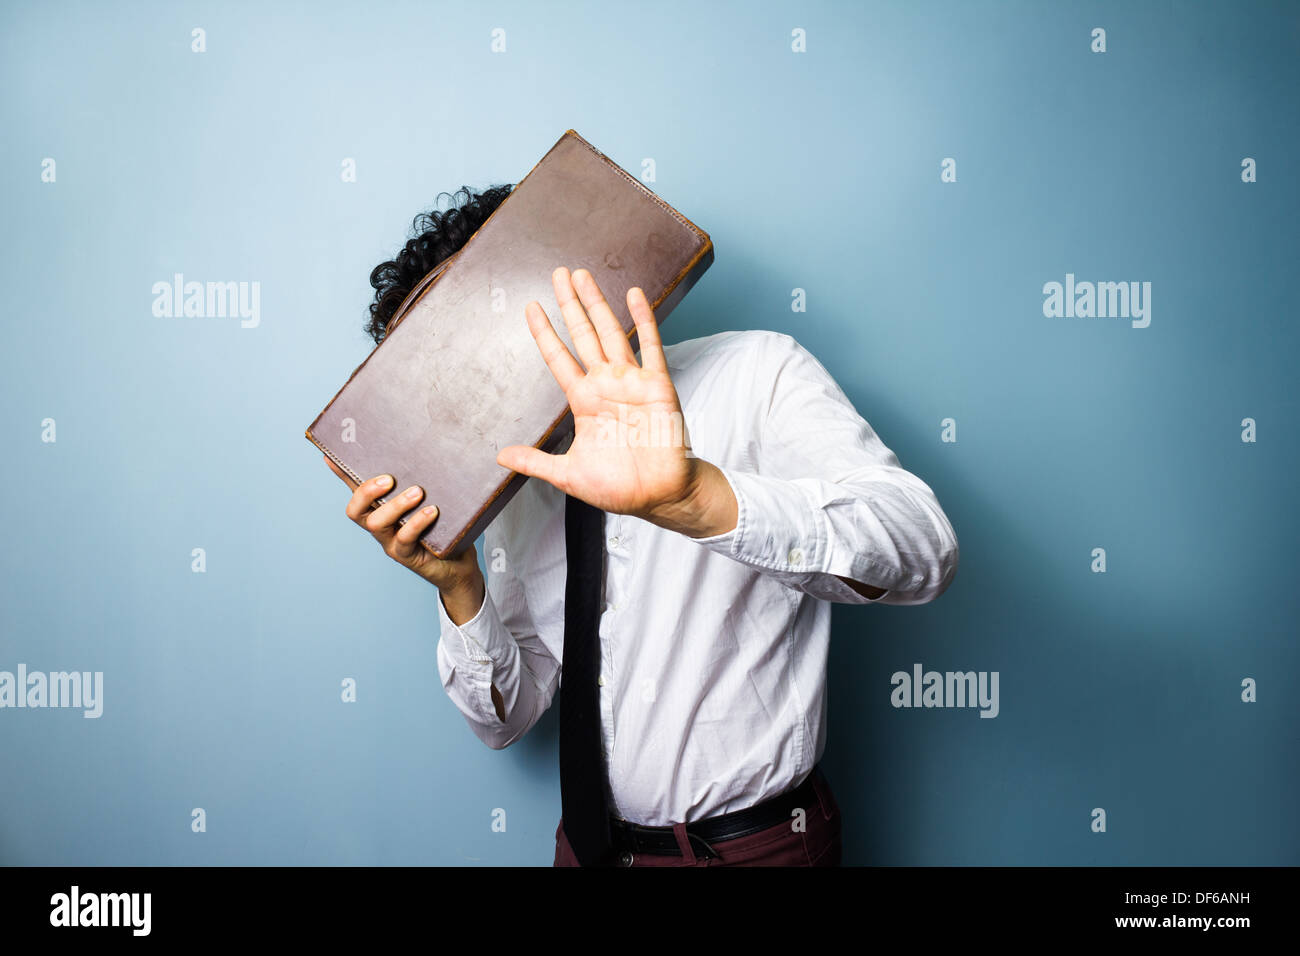 Young man doesn't want his photo taken and is hiding his face behind a briefcase - Stock Image